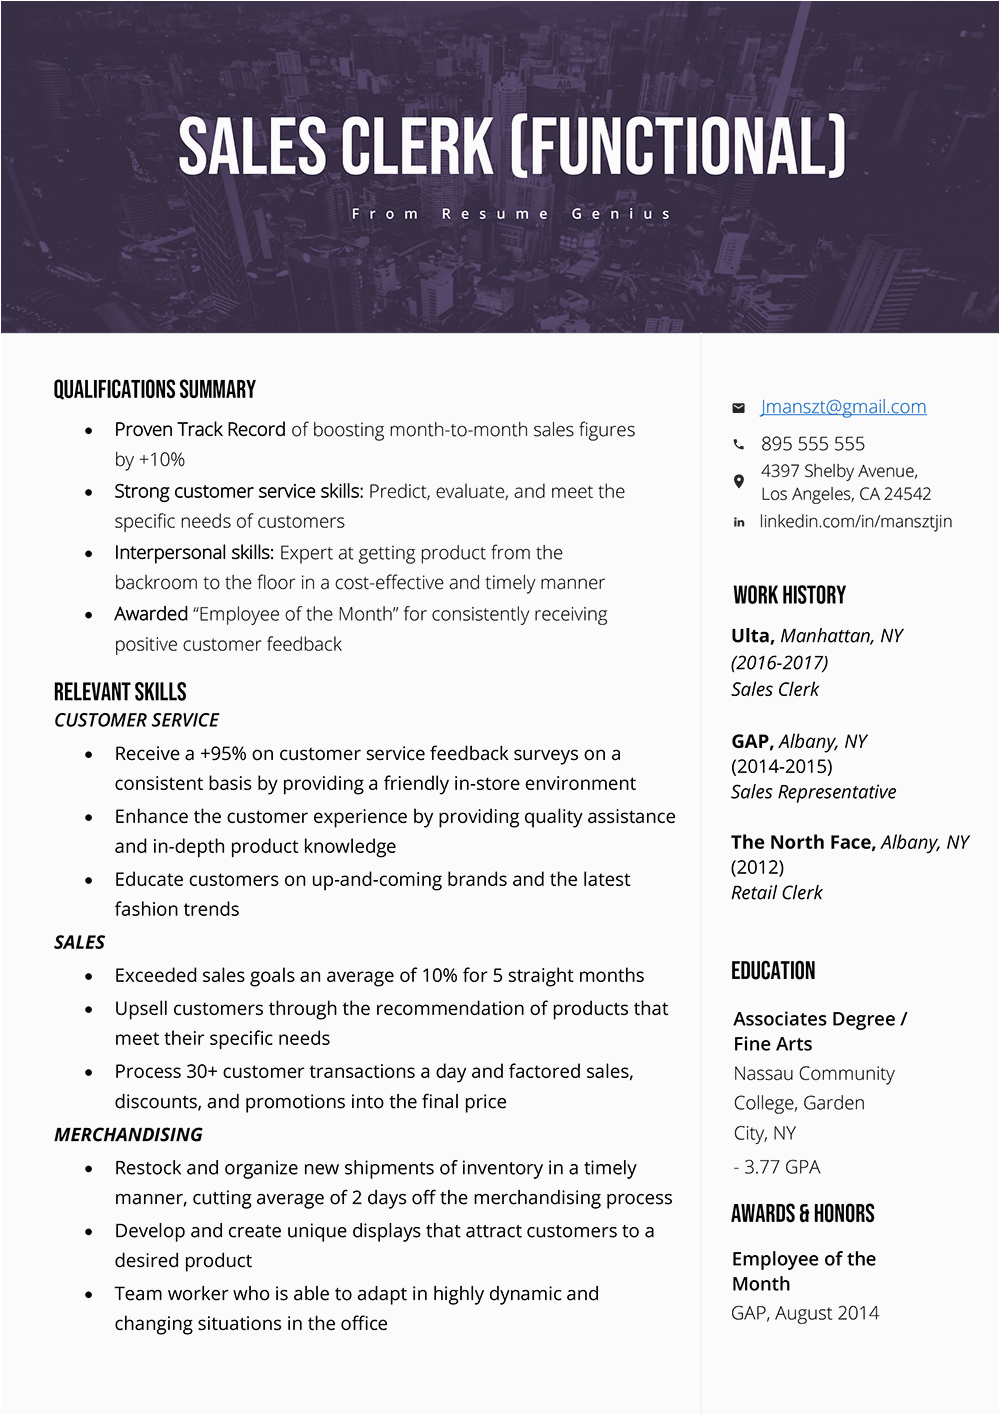 basic resume skills and abilities examples